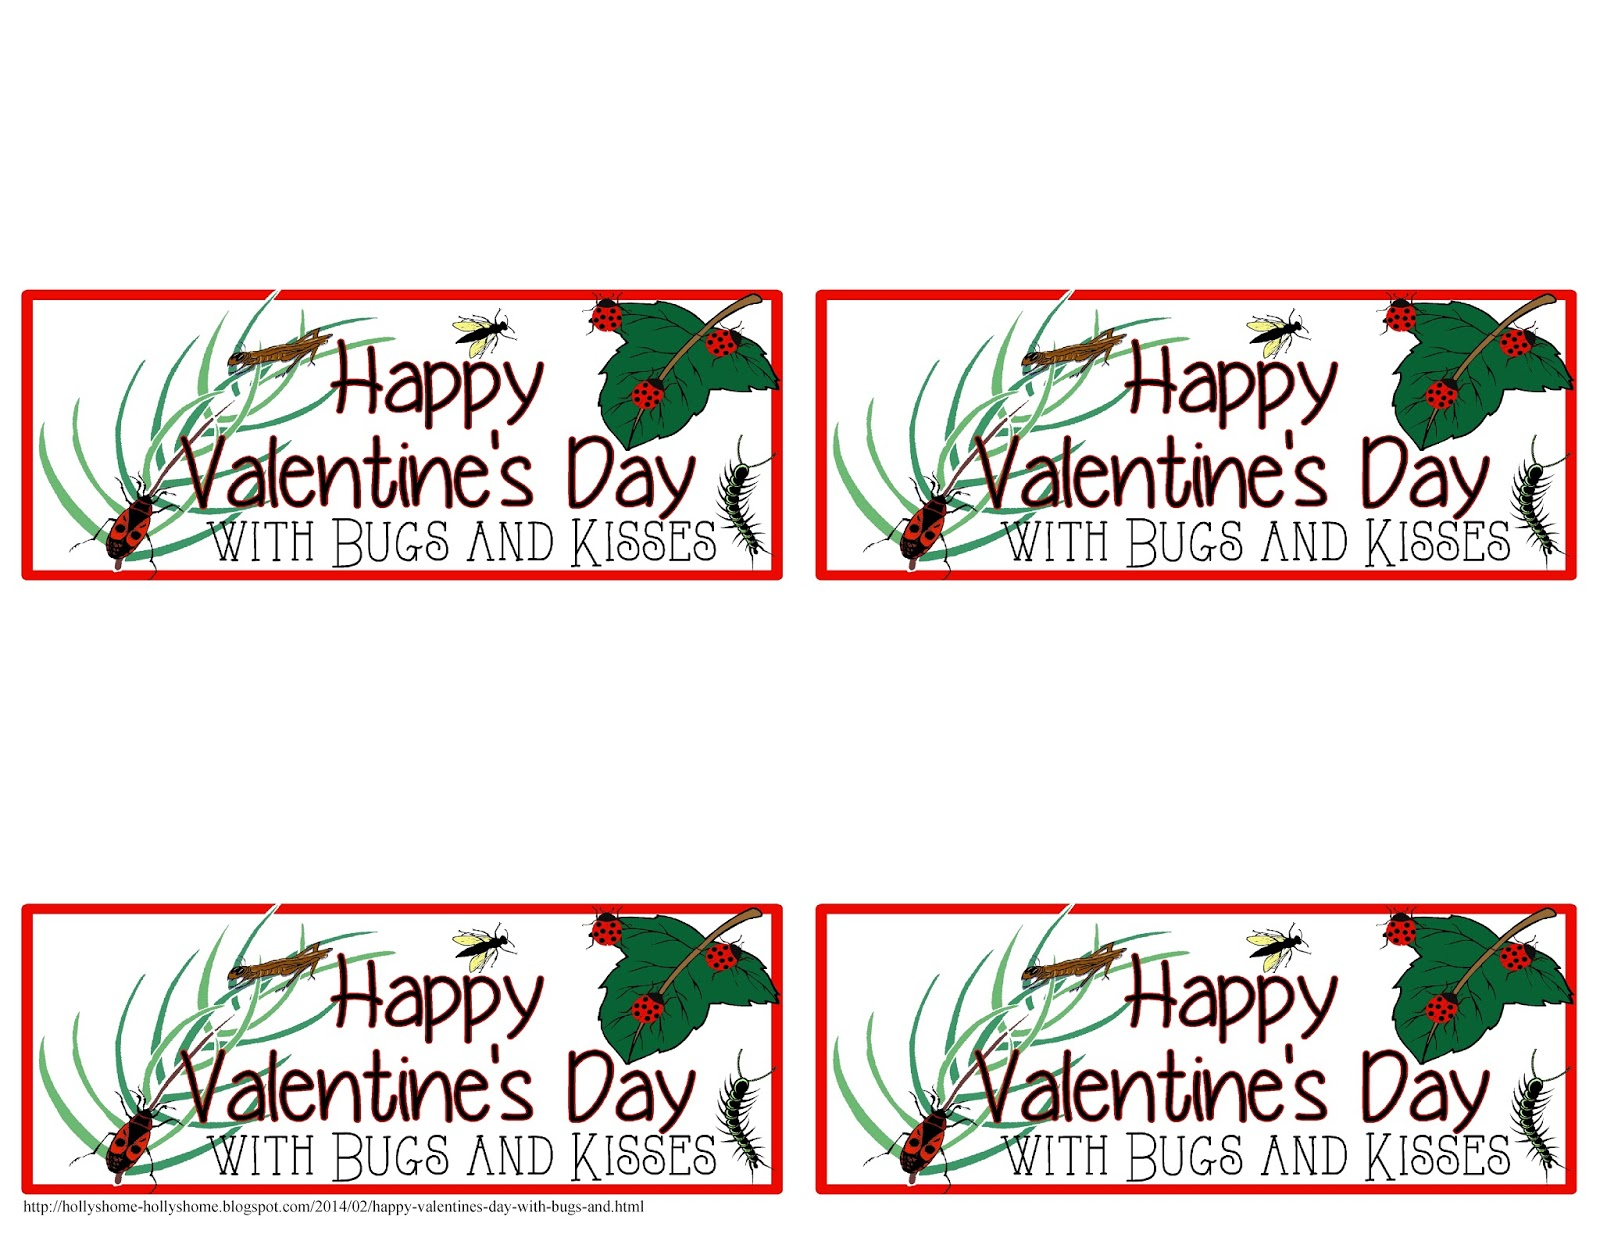 photo about Bugs and Kisses Free Printable named HollysHome Household Lifestyle: Content Valentines Working day with Insects and